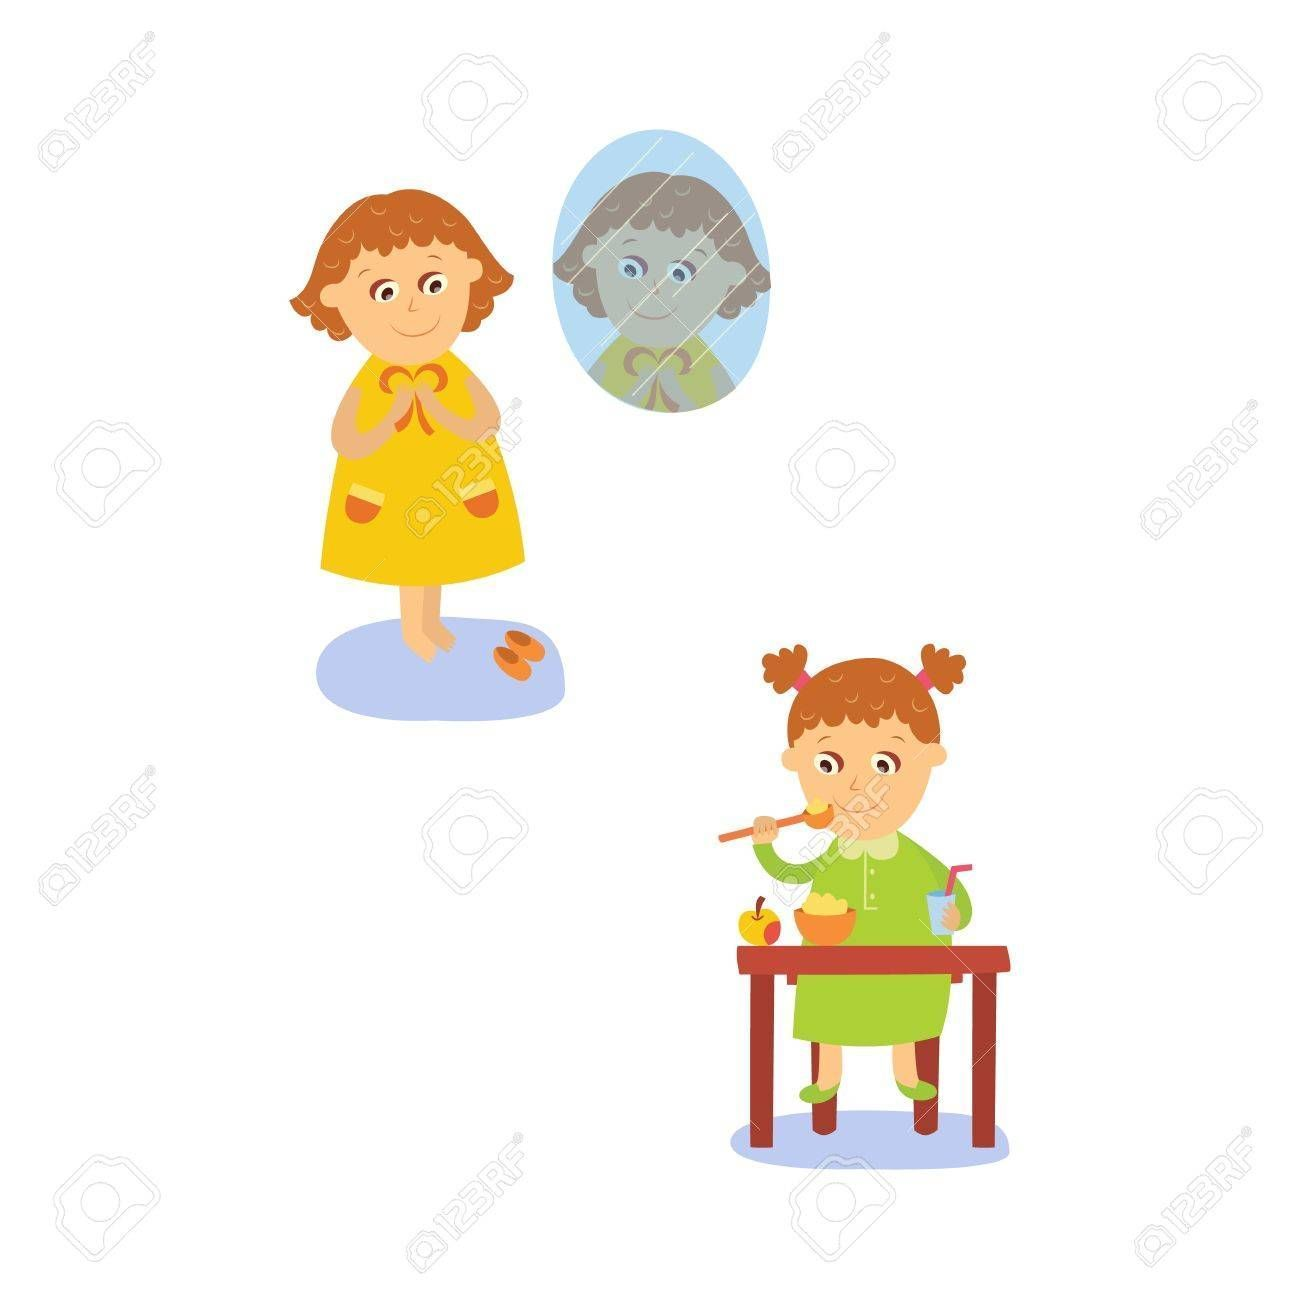 Vector Flat Girl Kid Doing Everyday Routine Activity Set Child Eating Porridge Ant Apple At Table Dressing In 2020 Kids Table Set Table Settings Everyday Apple Table